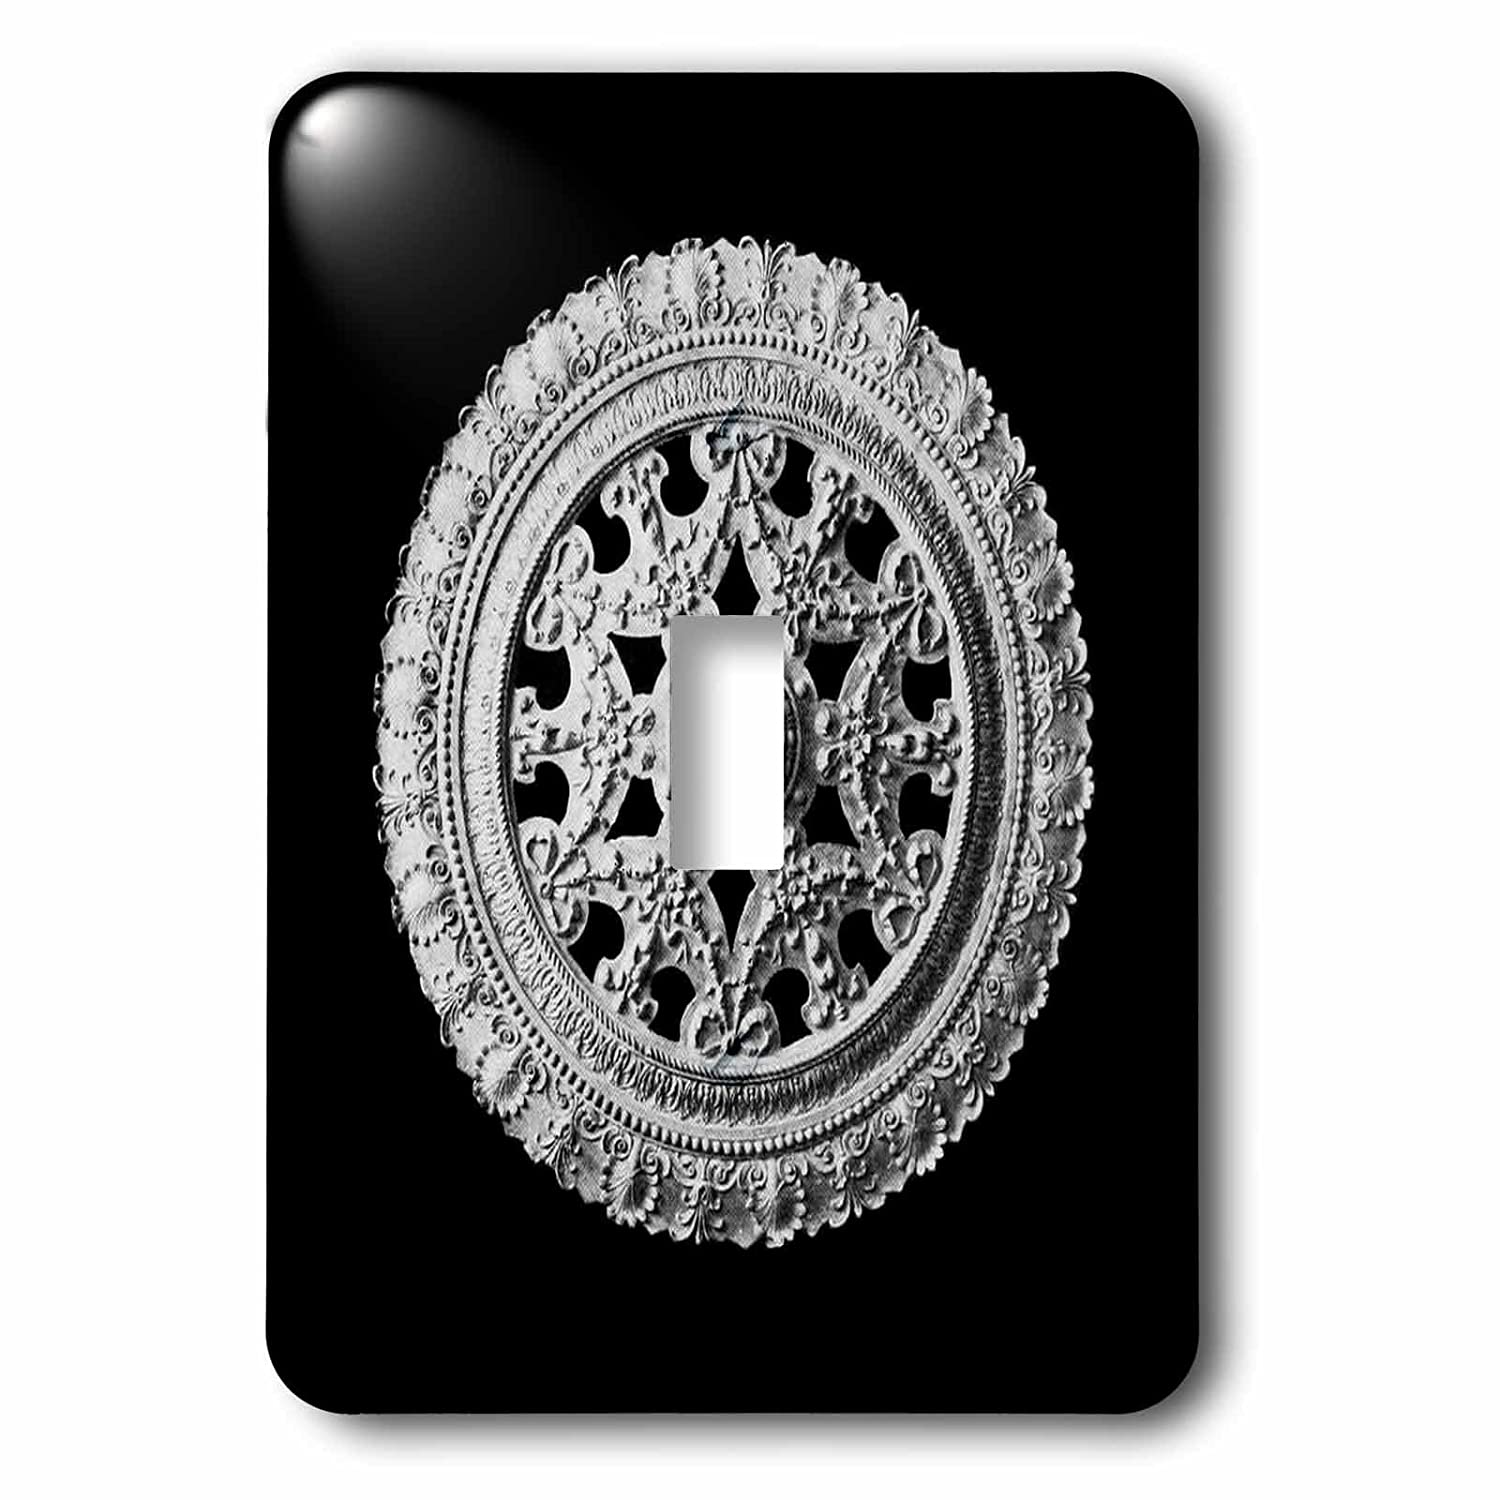 3D Rose lsp/_31790/_1 Silver Gray Ornate Vintage Architectural Element on Black Background-Single Toggle Switch Grey 3dRose